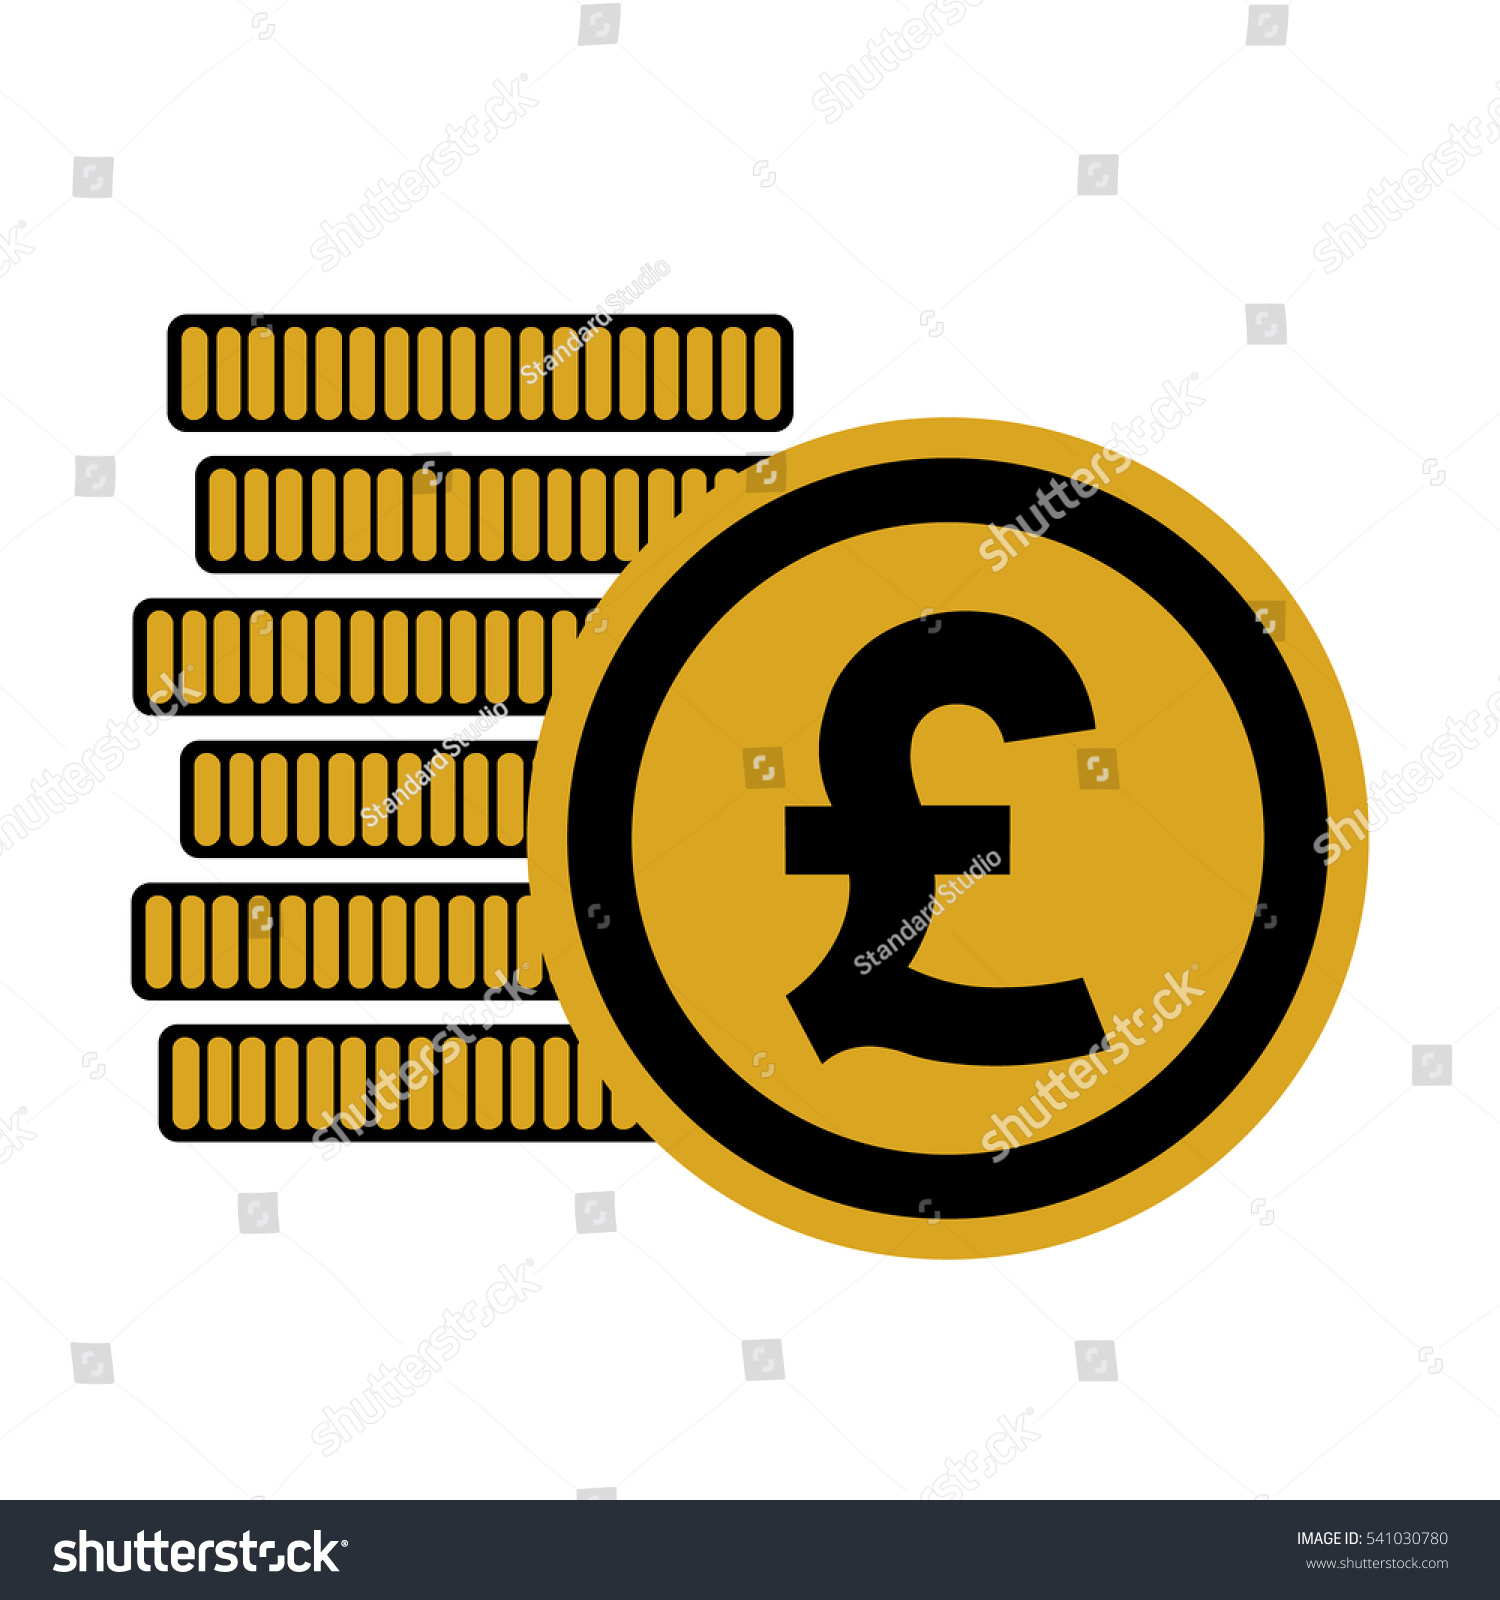 Currency symbol for british pound image collections symbols and british pound money coins sign gbp stock vector 541030780 british pound money coins sign gbp currency buycottarizona Choice Image